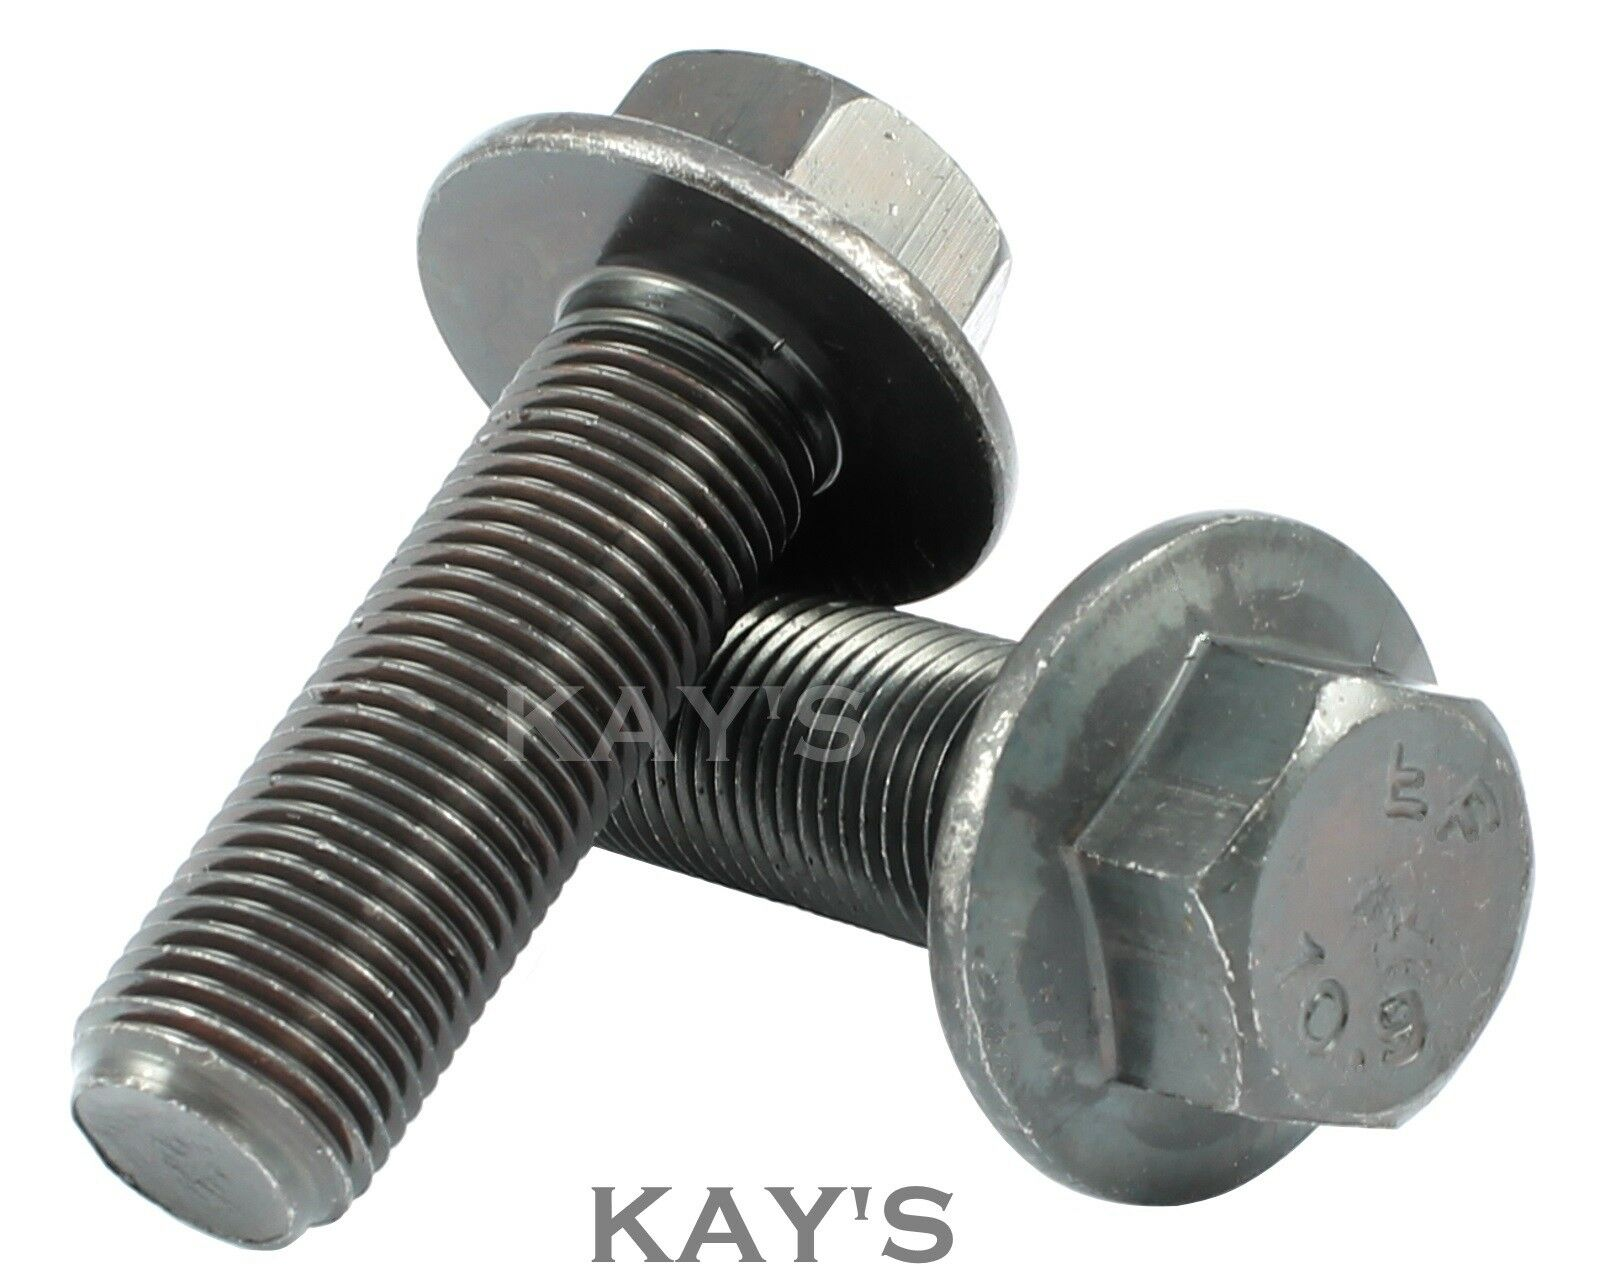 FINE PITCH THREAD FLANGED HEXAGON BOLTS HIGH TENSILE GRADE 10.9 FLANGE SCREWS